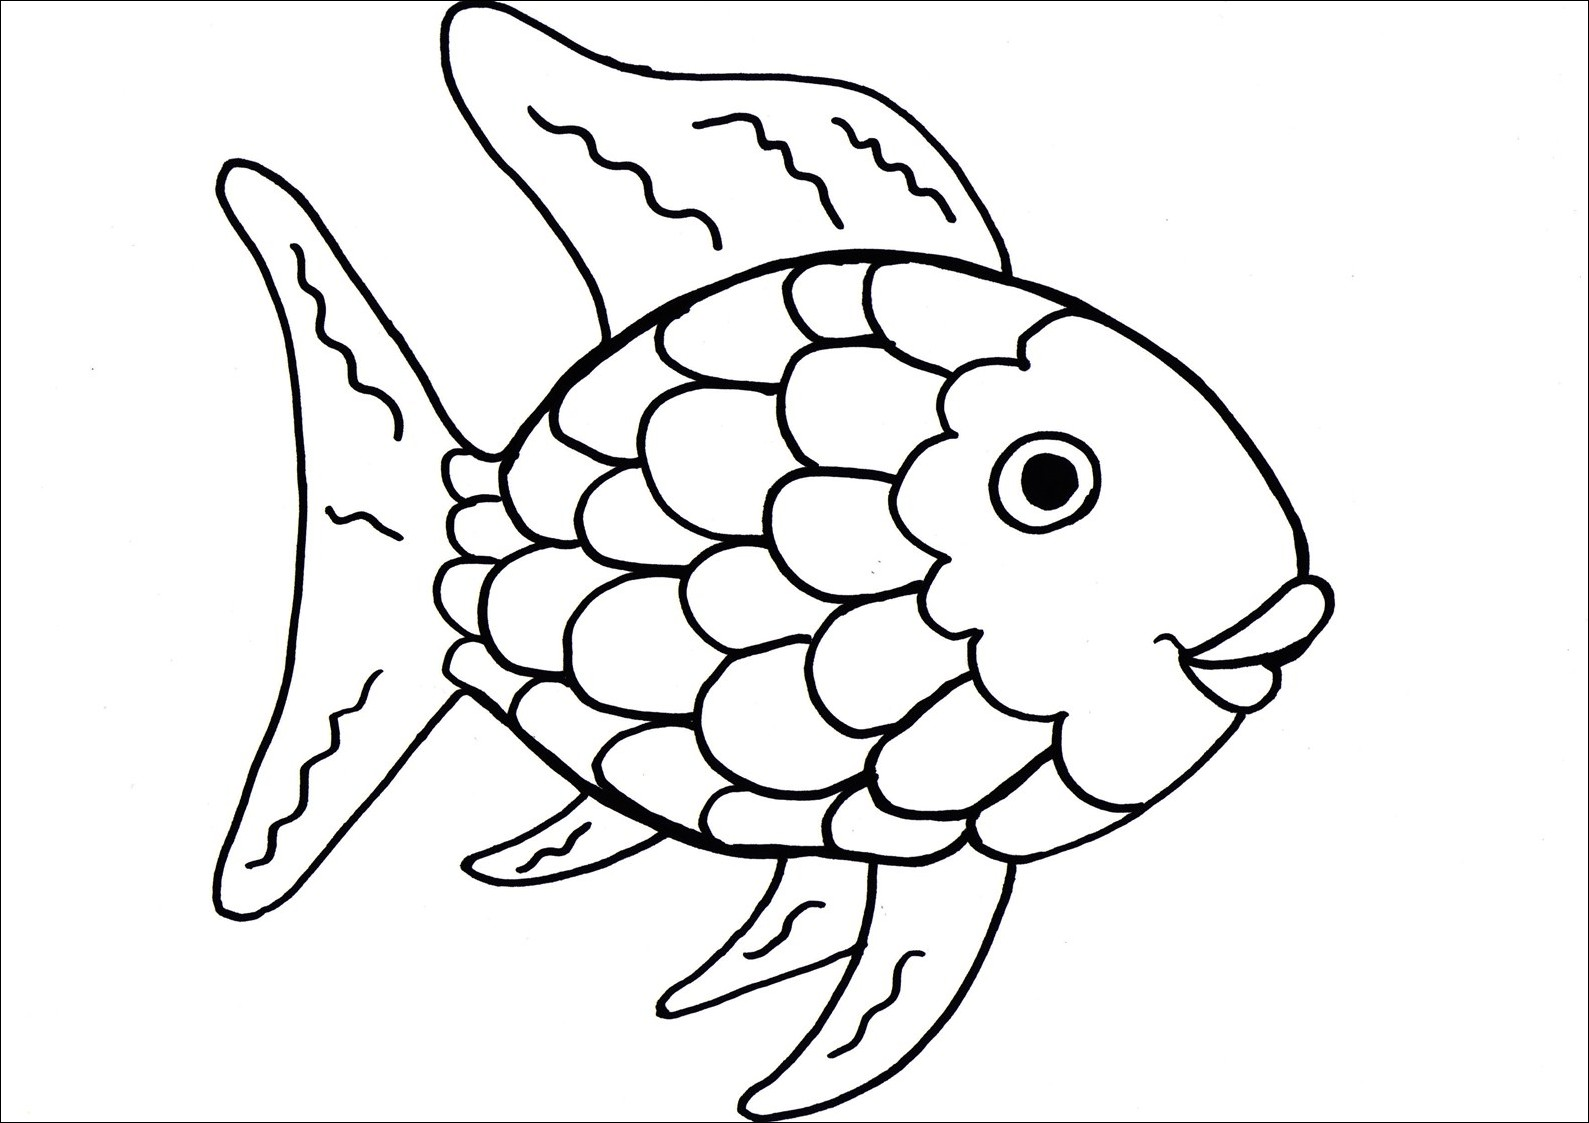 Free Rainbow Fish Clipart Black And White, Download Free.